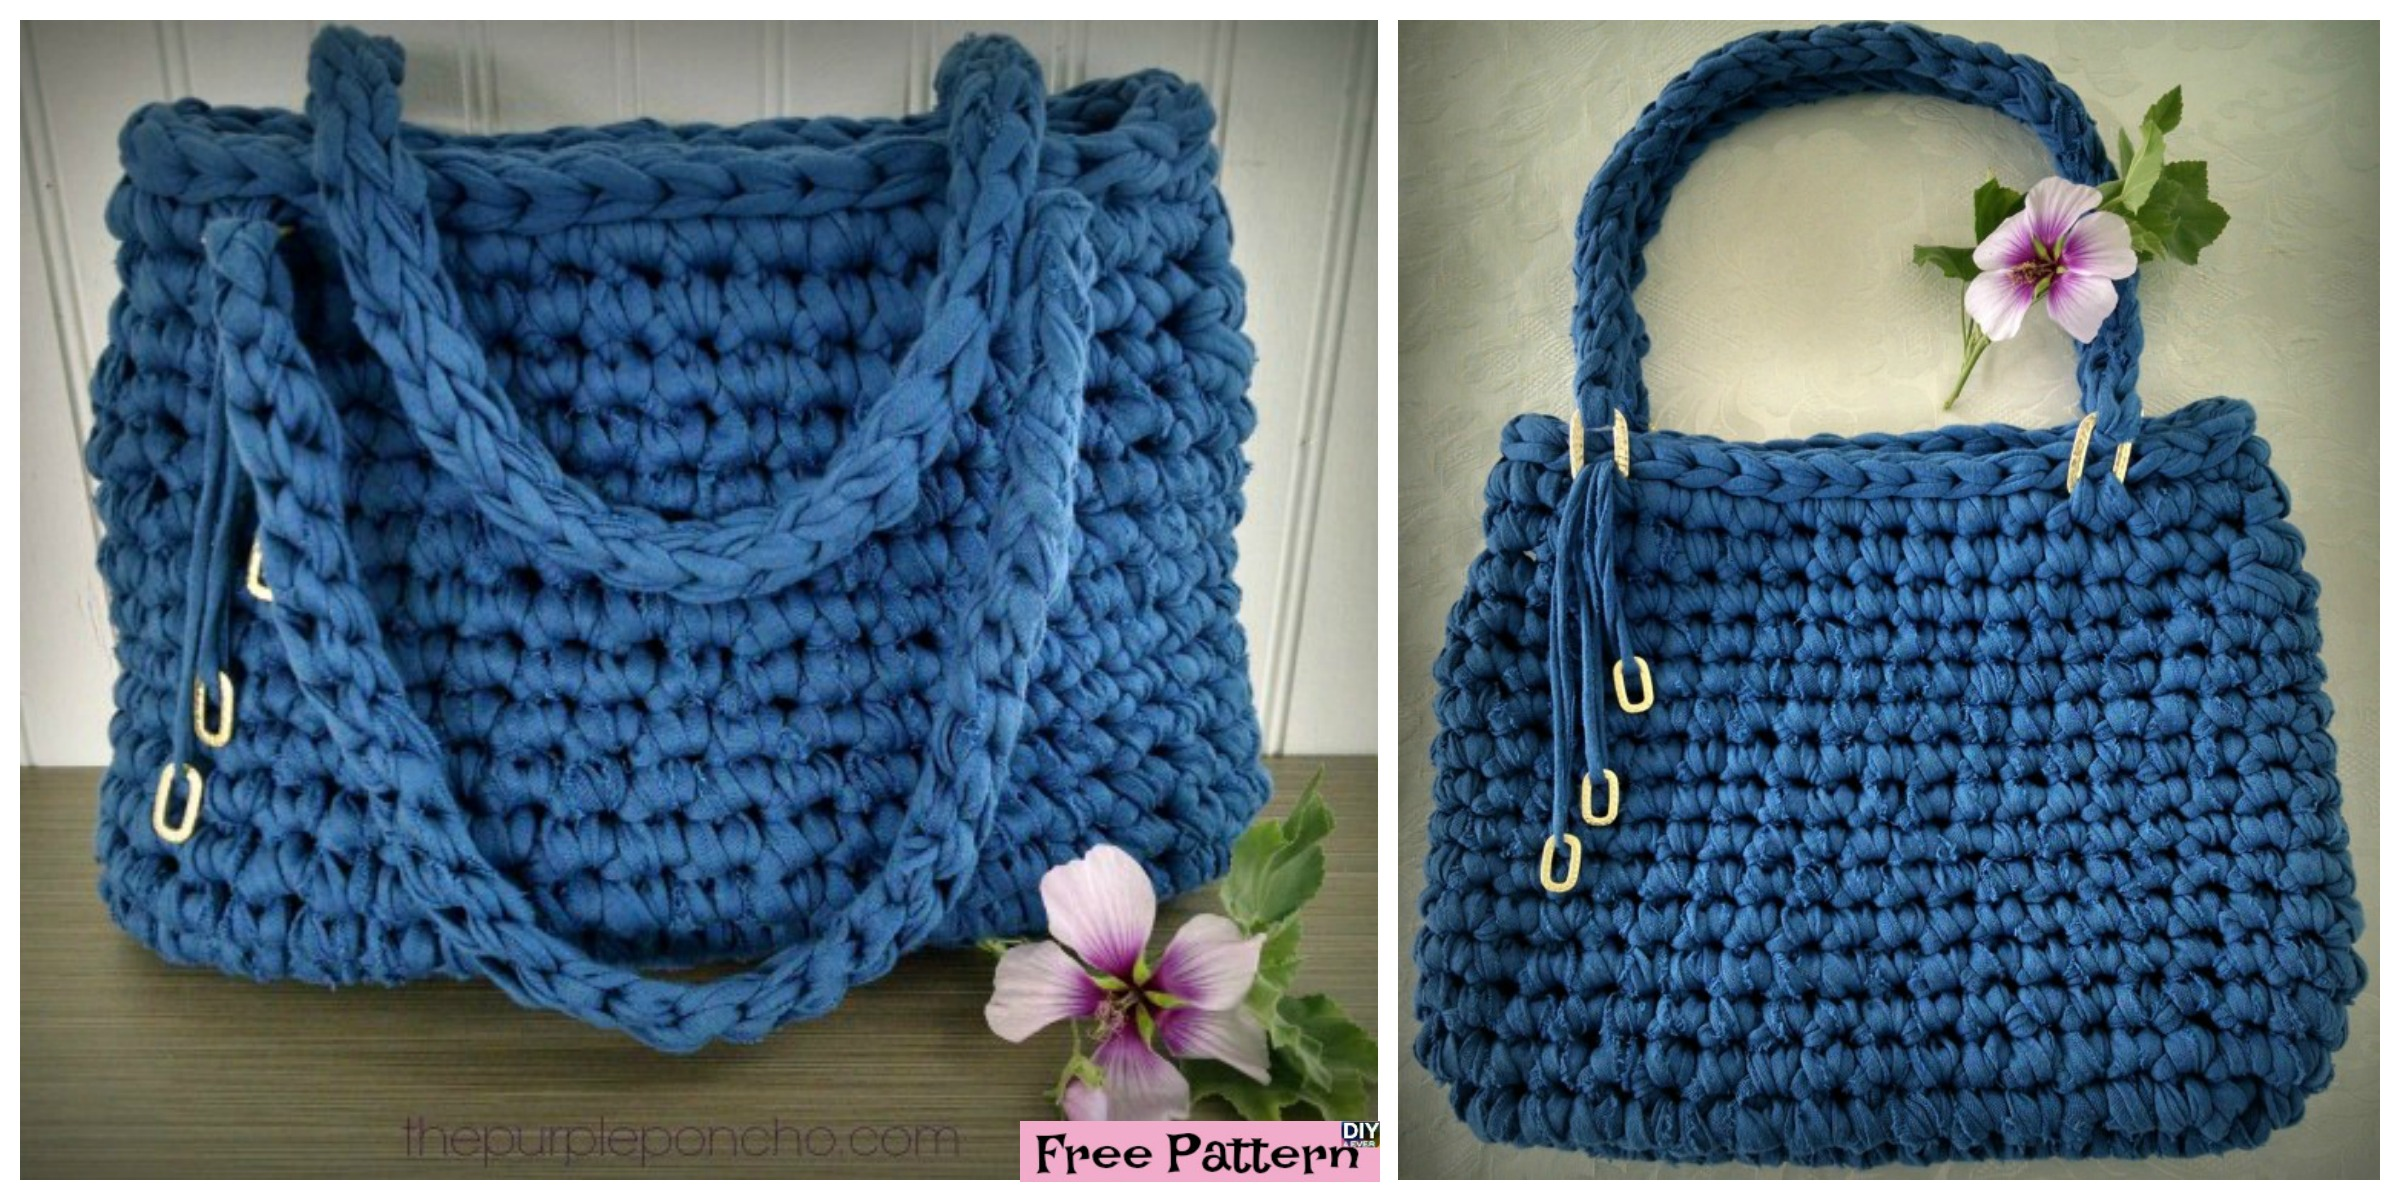 Crochet Island Breeze Bag – Free Pattern